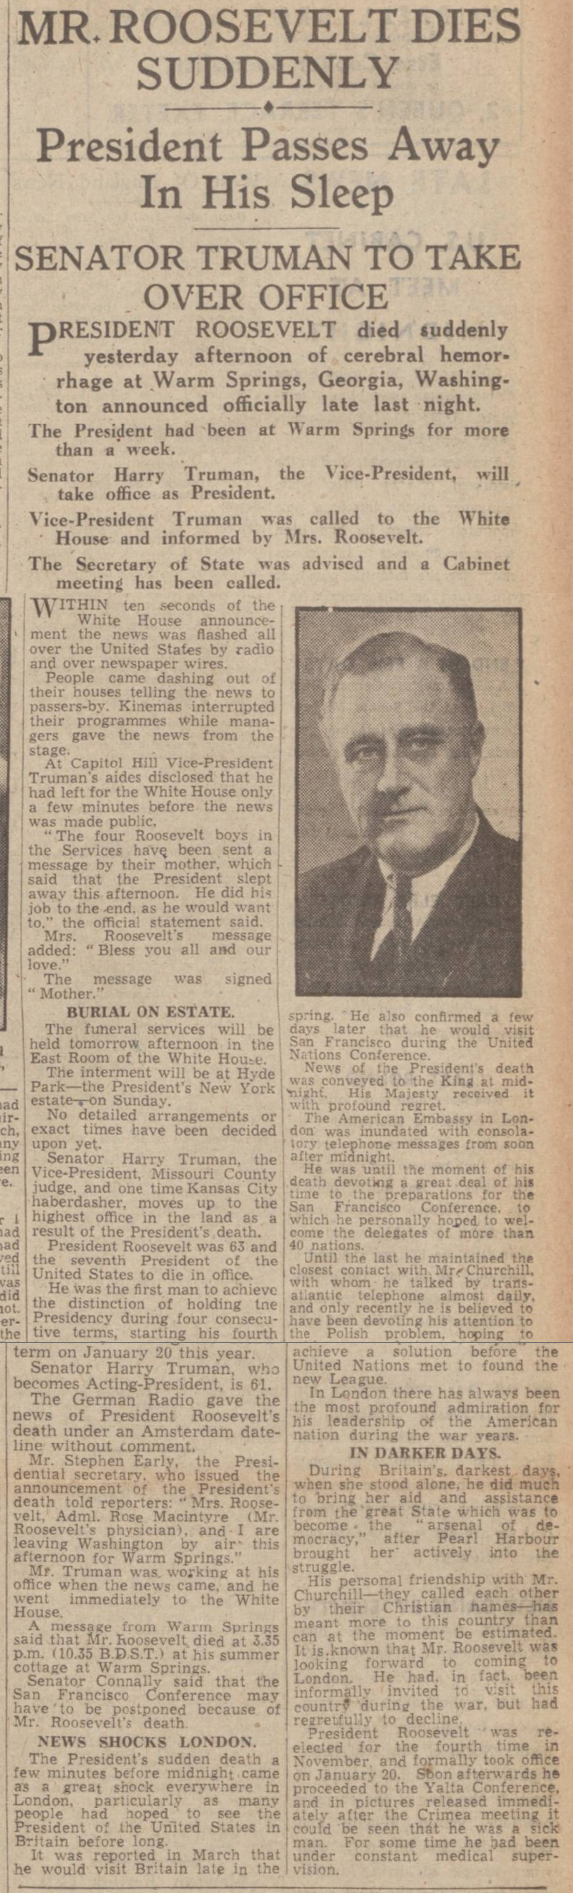 historical newspaper story about ther death of franklin d roosevelt